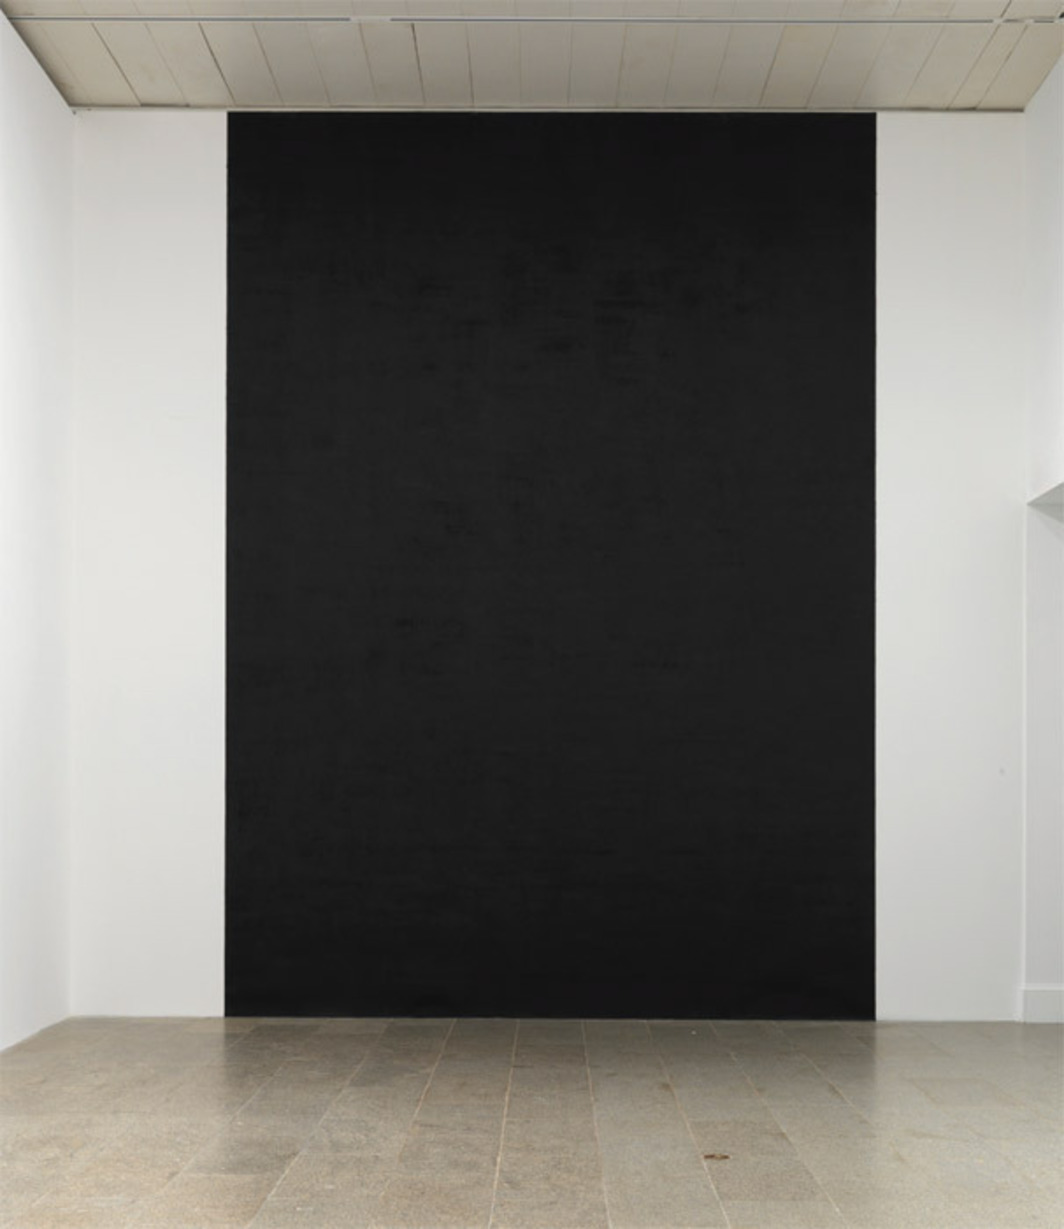 Richard Serra, Taraval Beach, 1977/2011, paint stick on Belgian linen. Installation view, 2011. Photo: Rob McKeever.